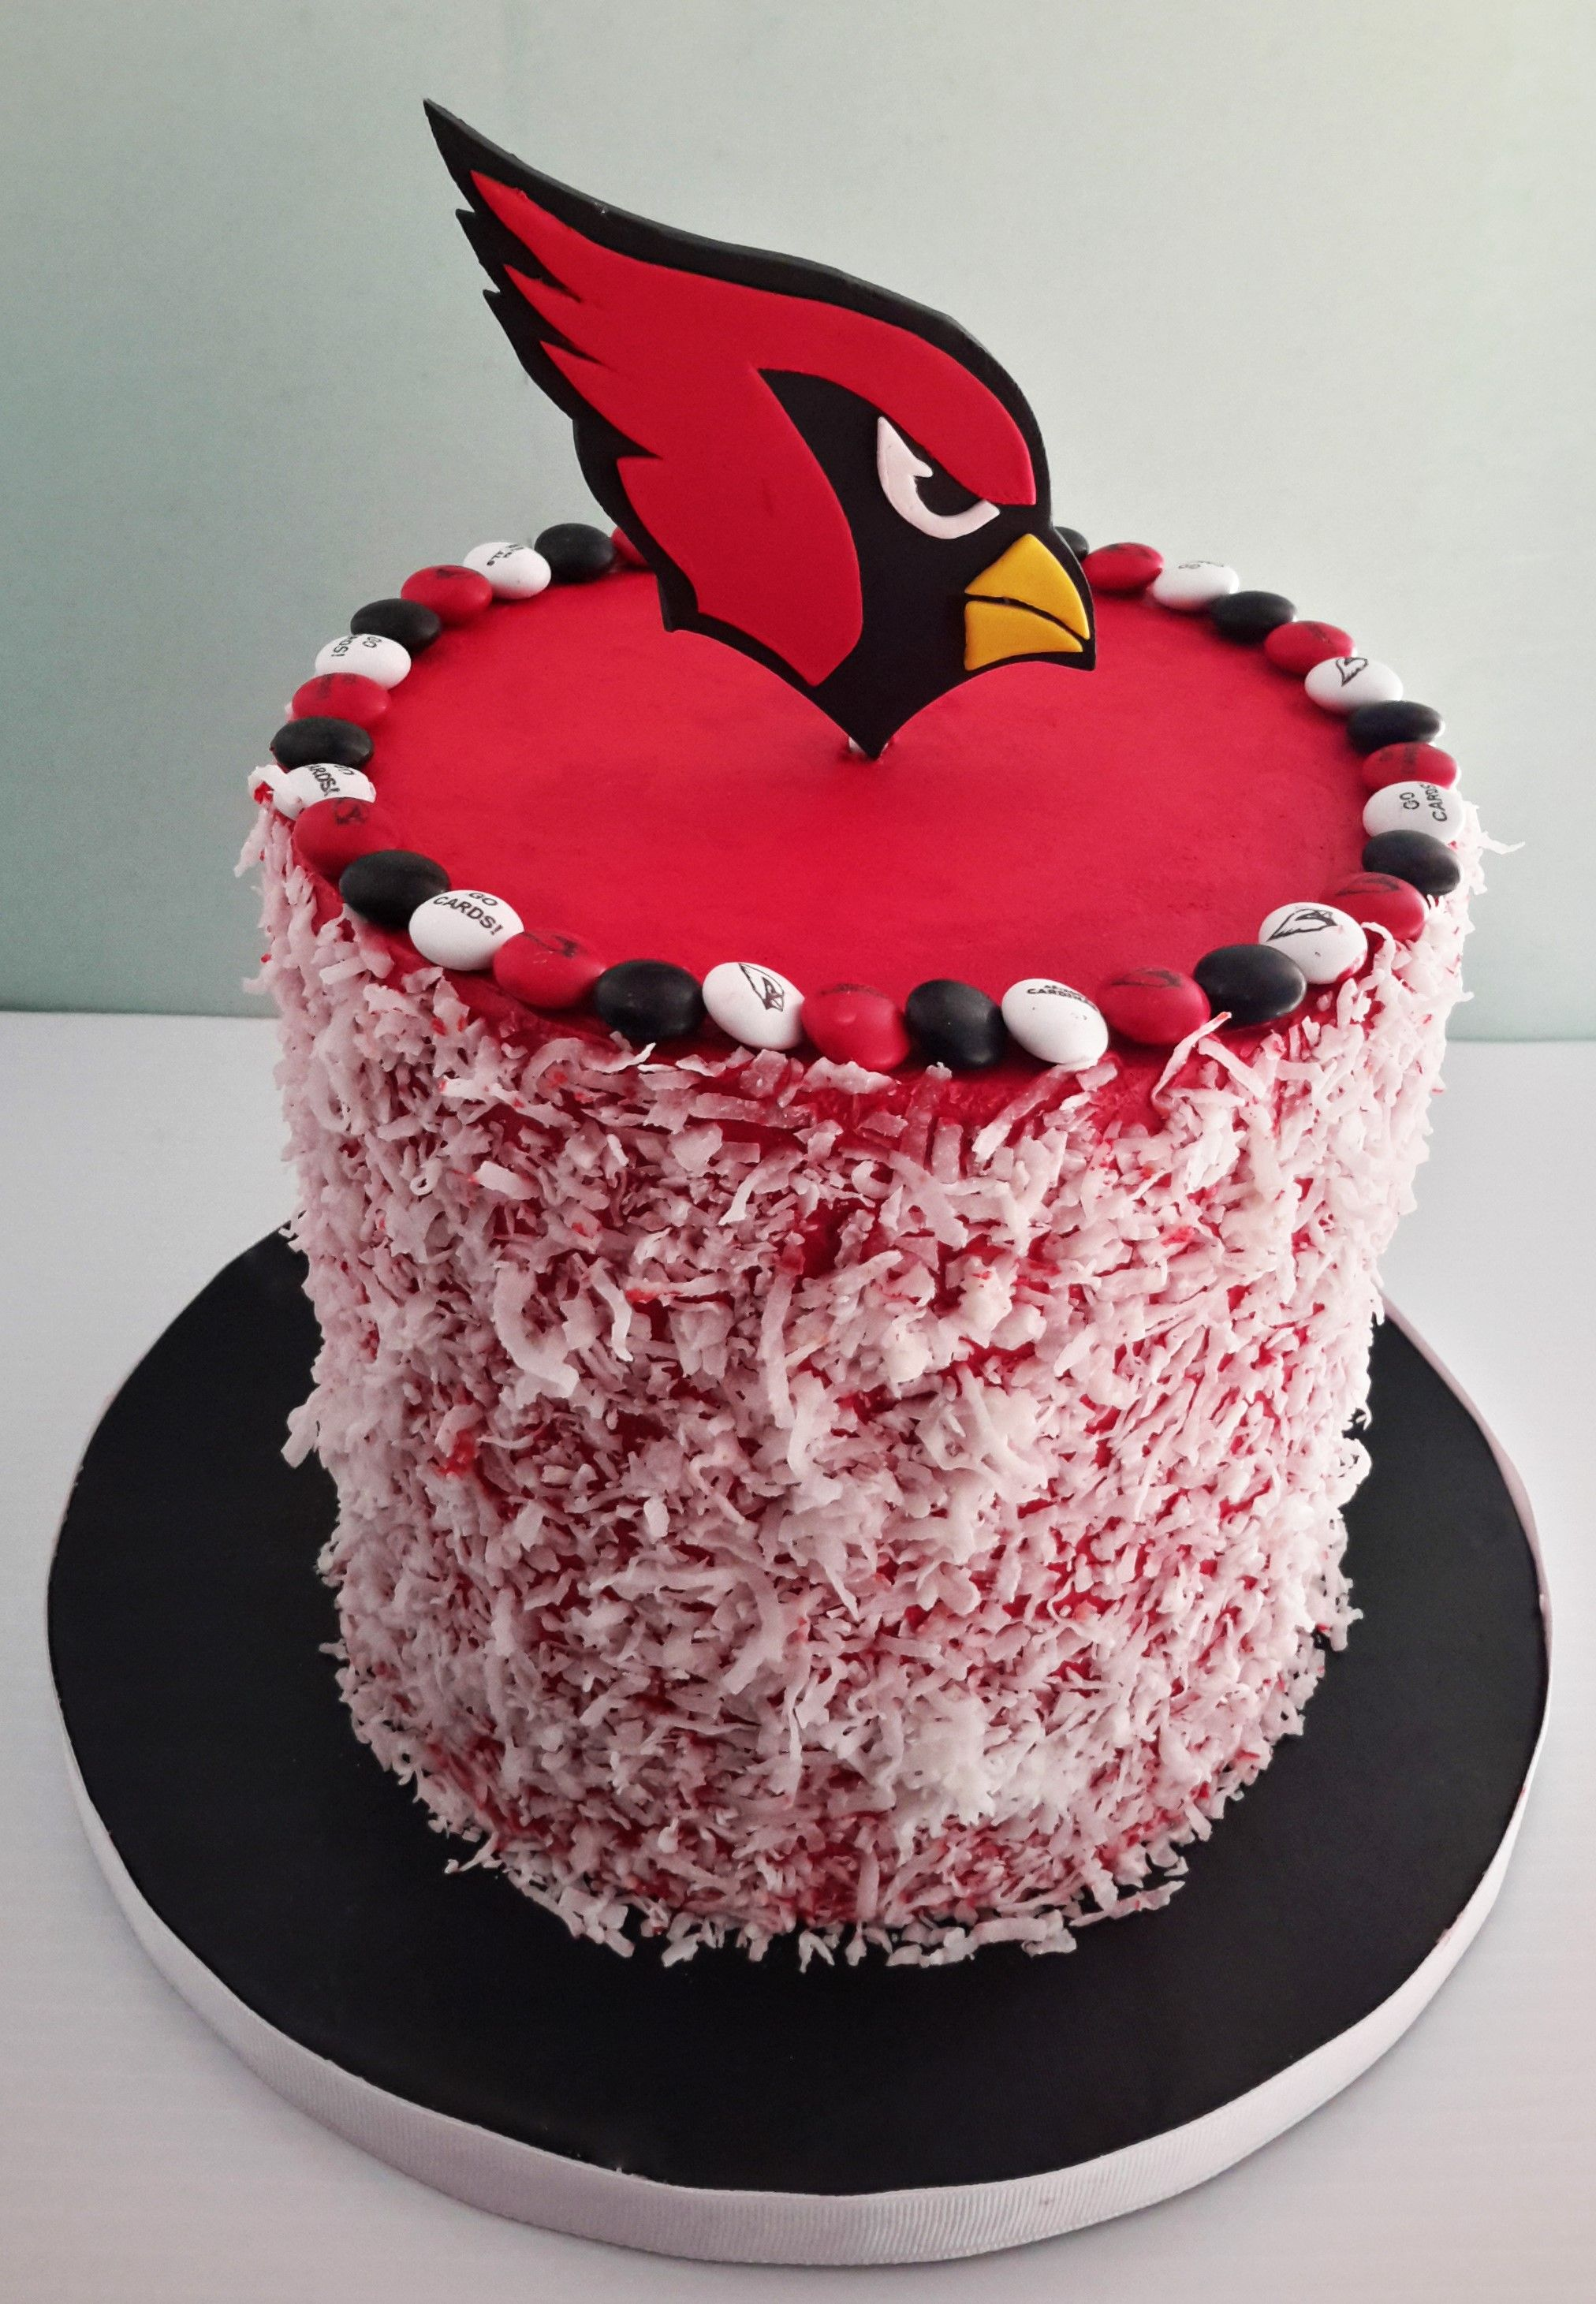 ea650282 AZ Cardinals cake. Go Cards! | Cakes in 2019 | Cake, Arizona ...